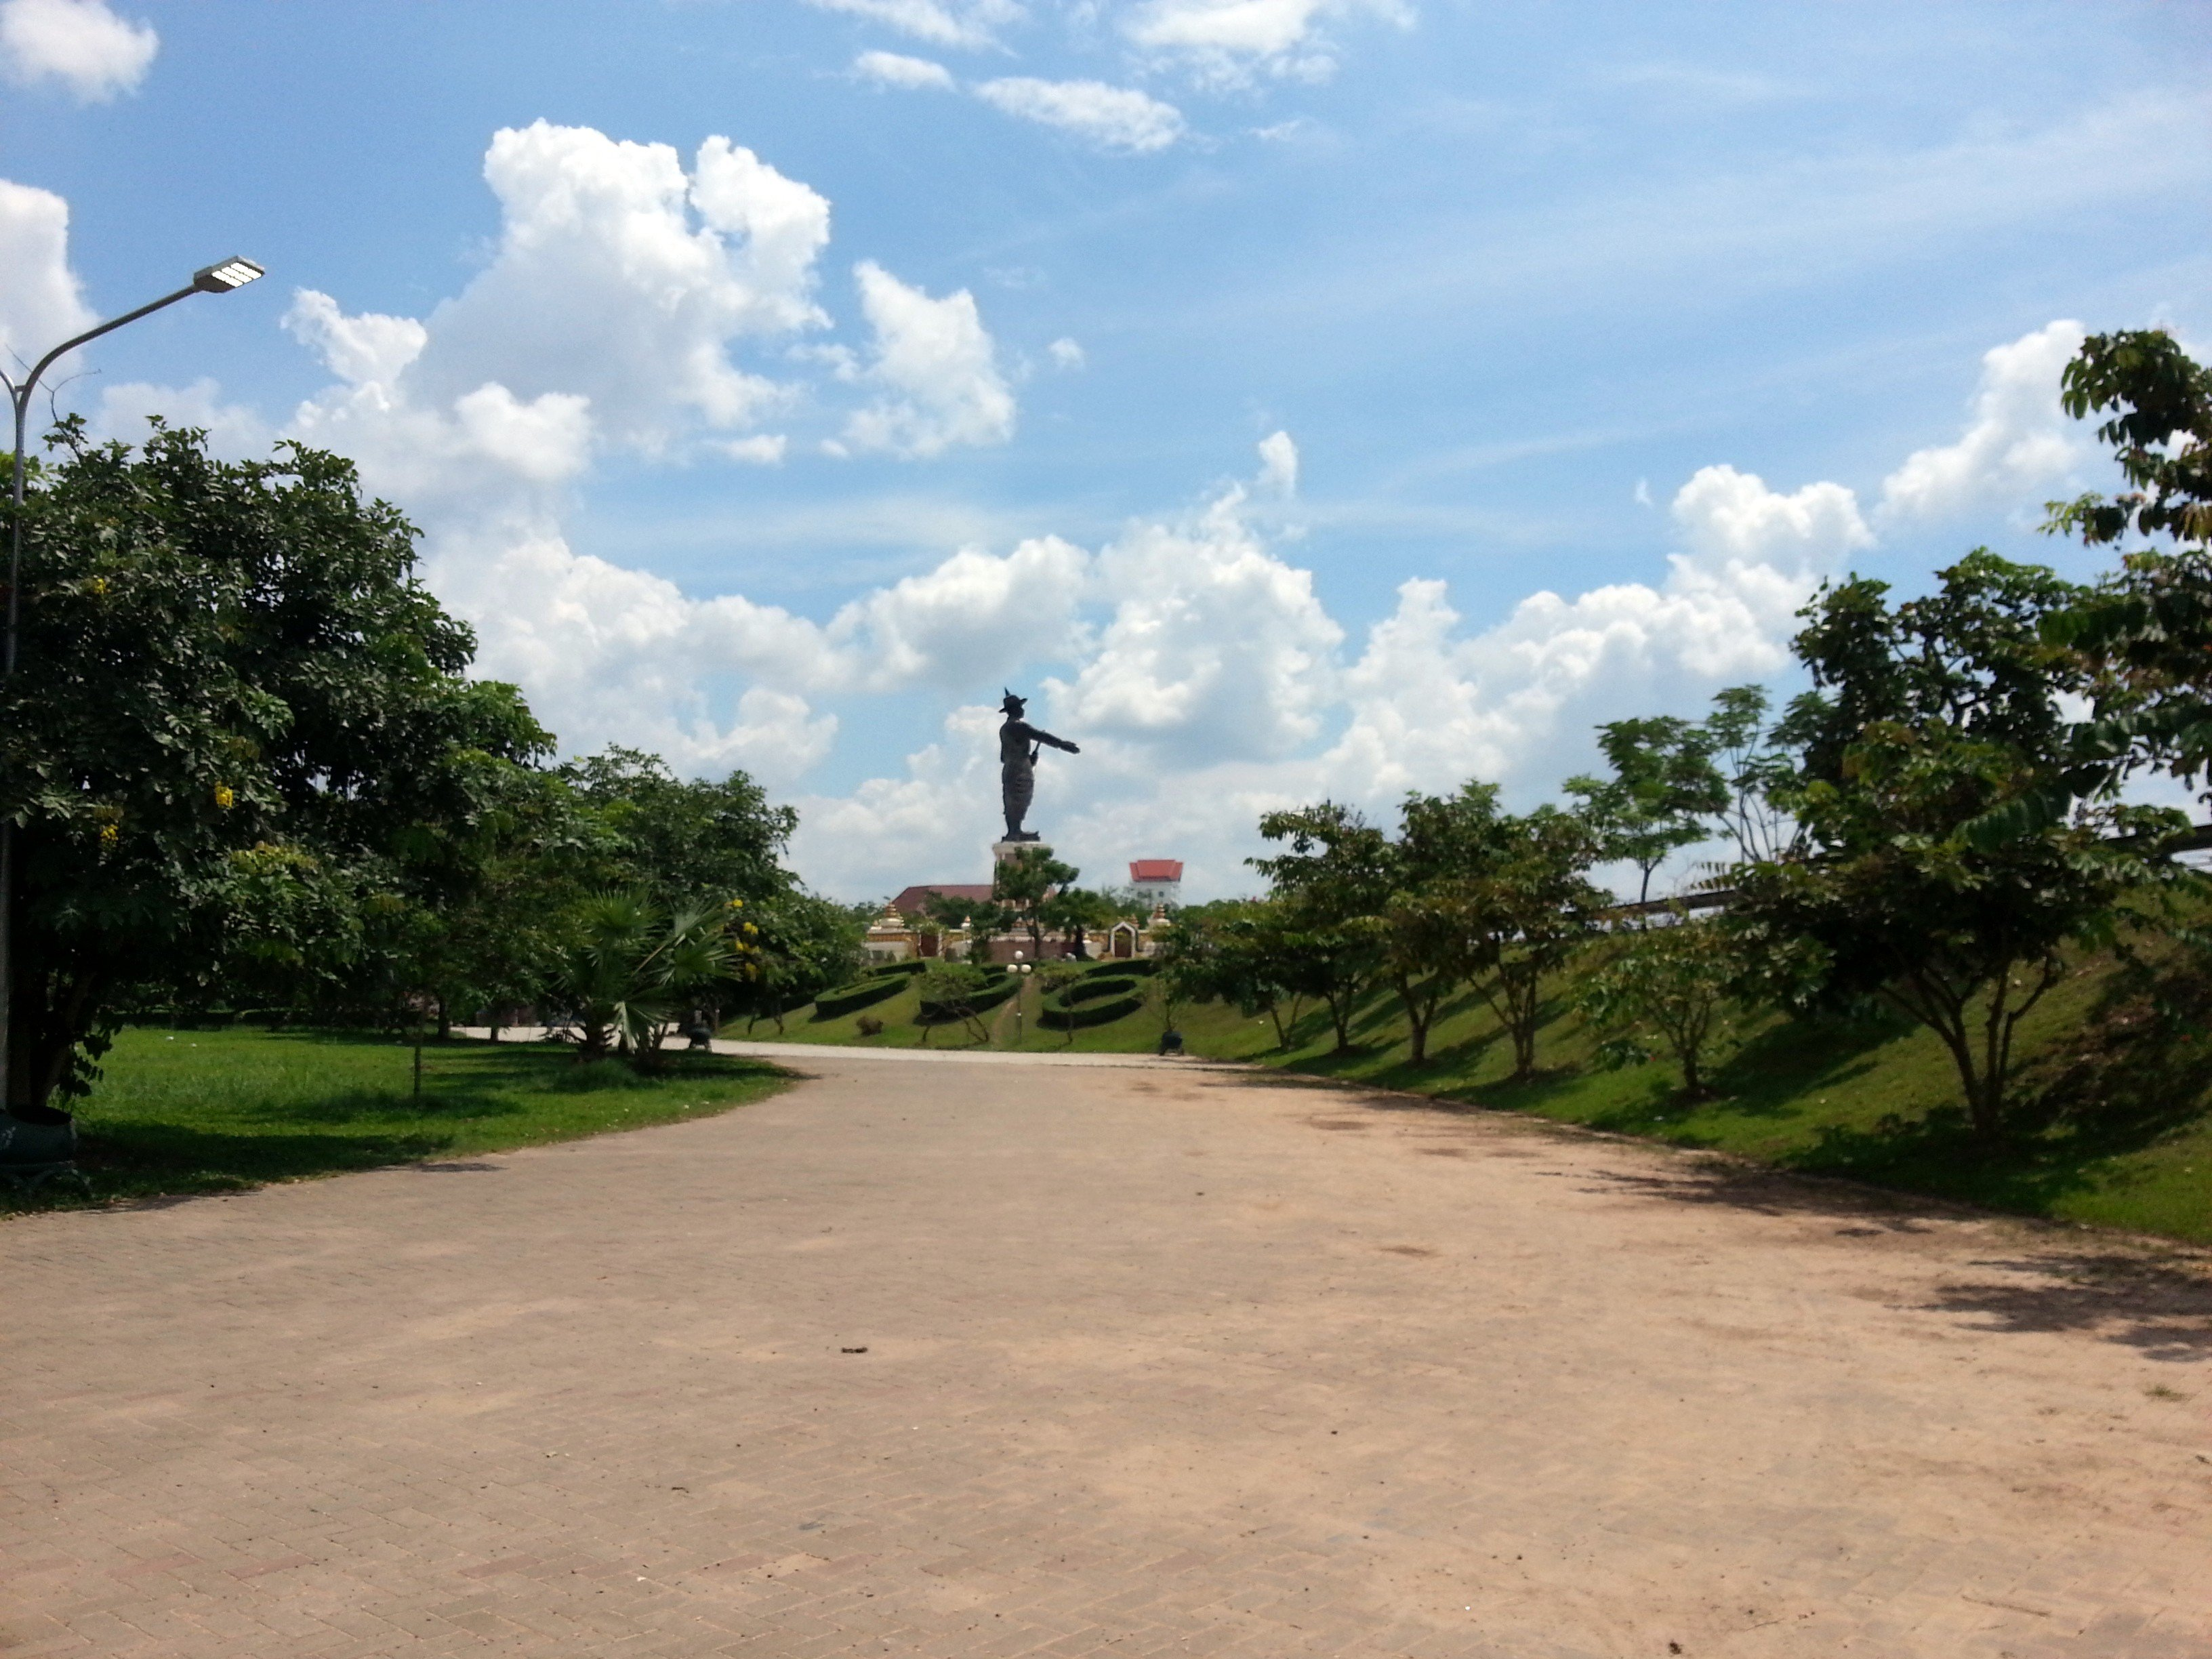 The statue is in Chao Anouvong Park